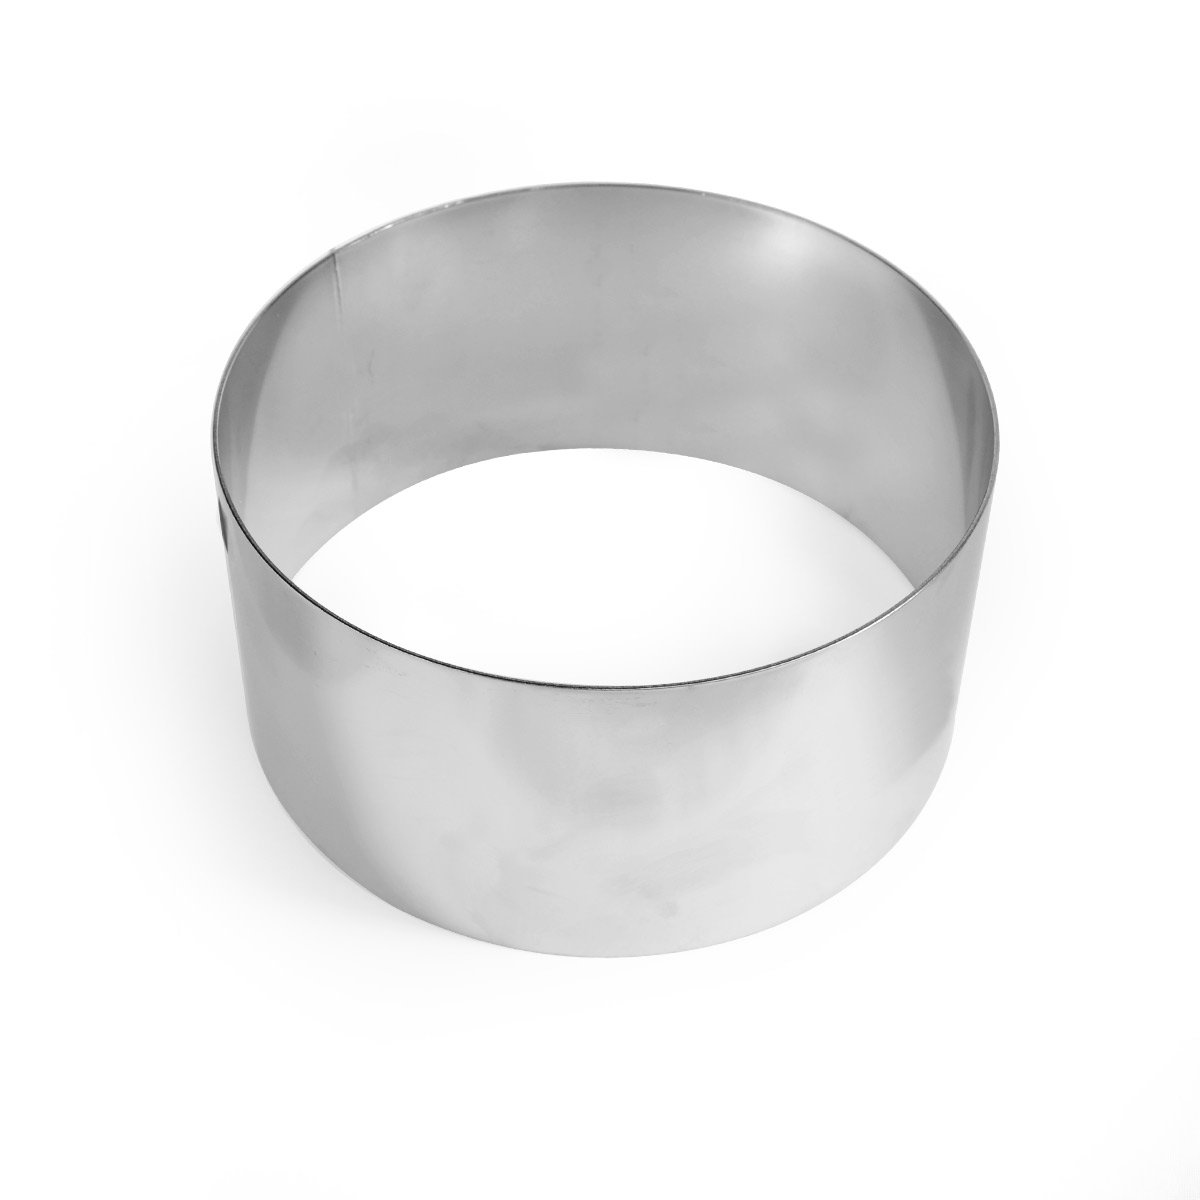 NY Cake Round Cake Ring 6 x 3 Stainless Steel